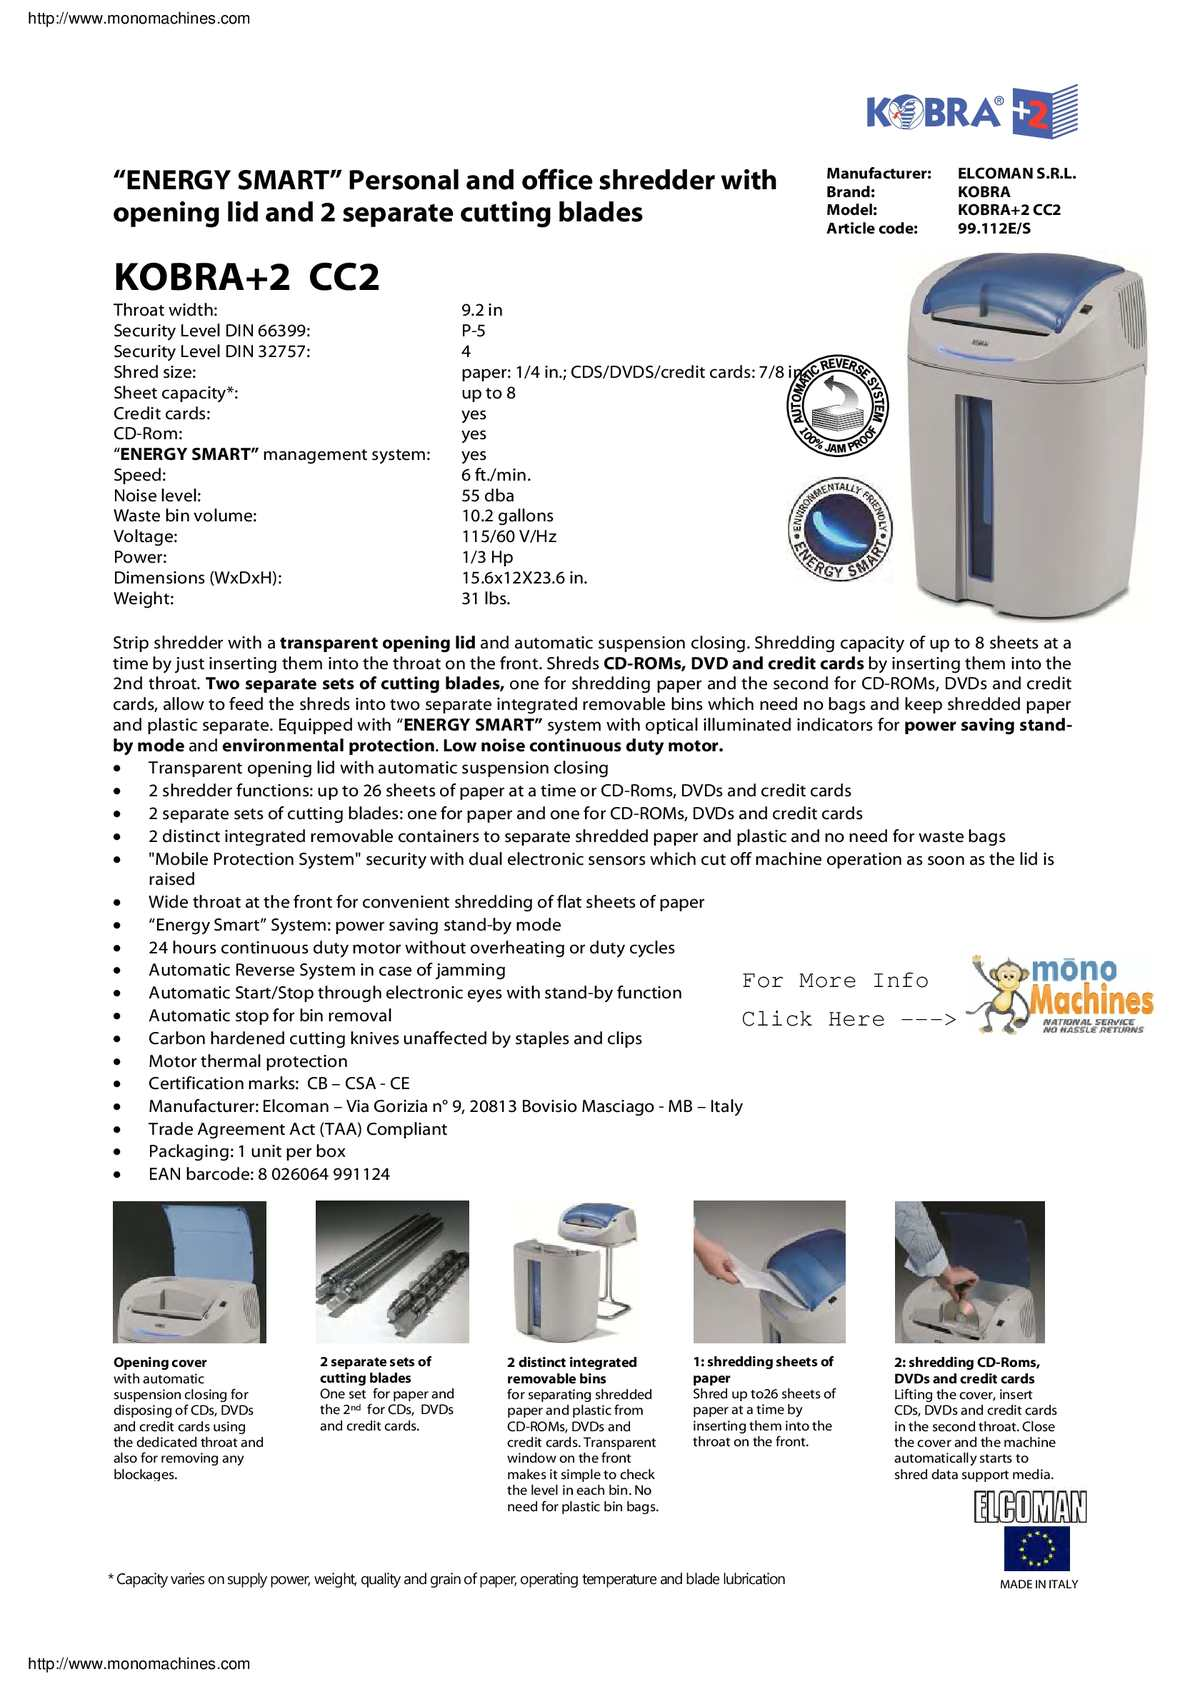 Calaméo - Kobra +2 CC2 Professional Small Offices Cross-Cut Shredder